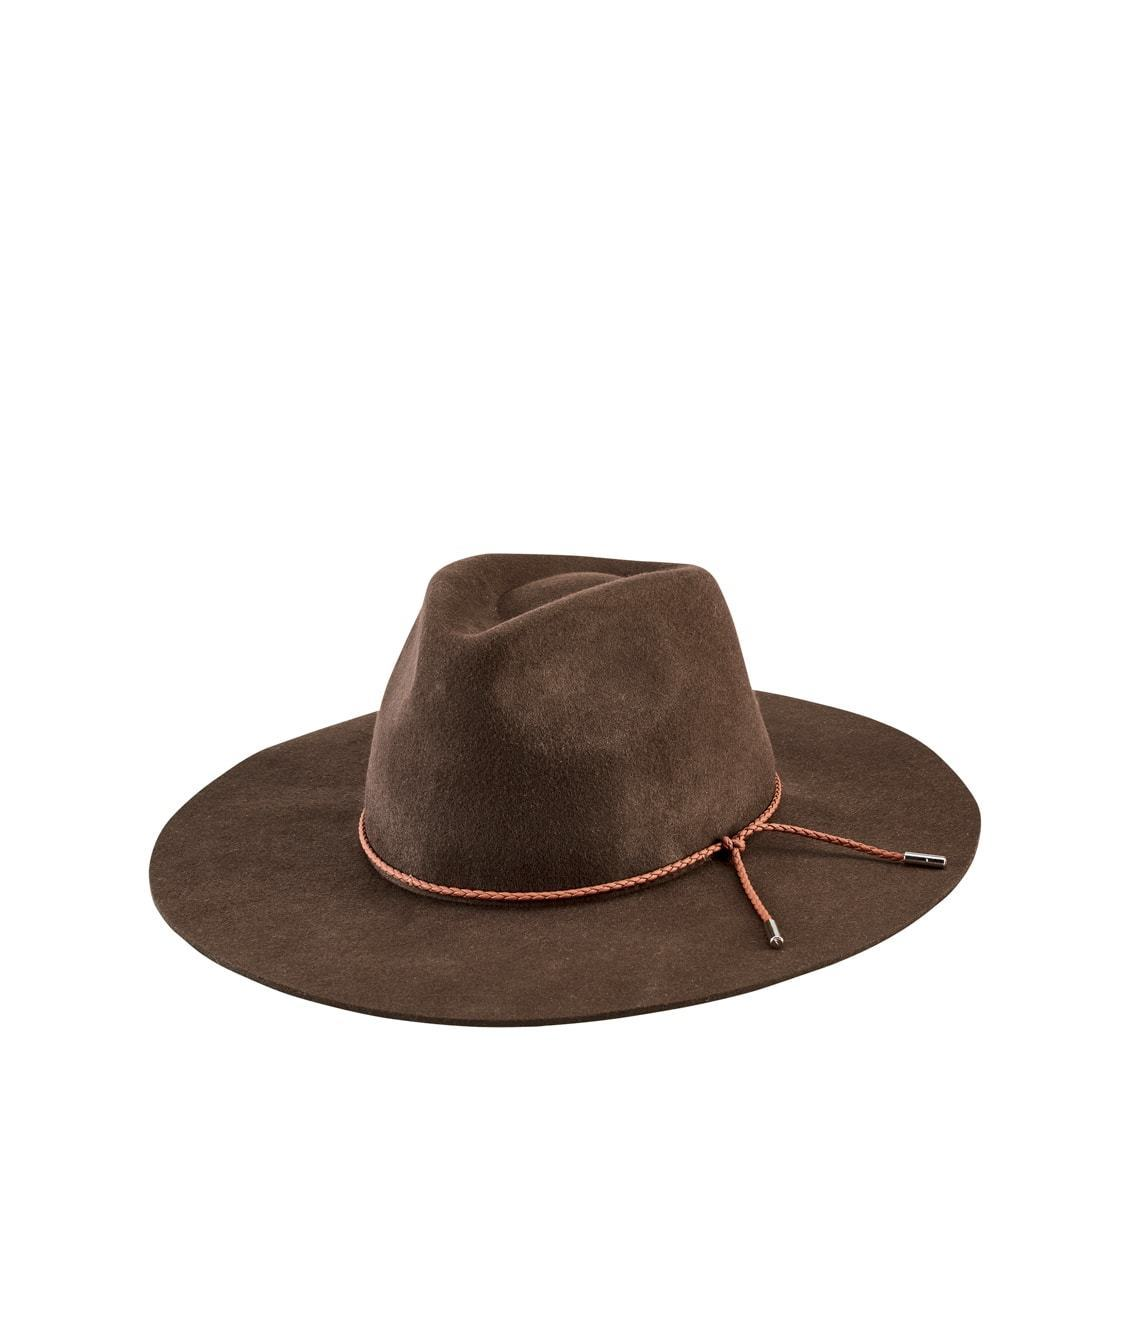 3bed79f94bb Women's Floppy Fedora With Braided Trim (WFH8047) | Feb 2019 ...